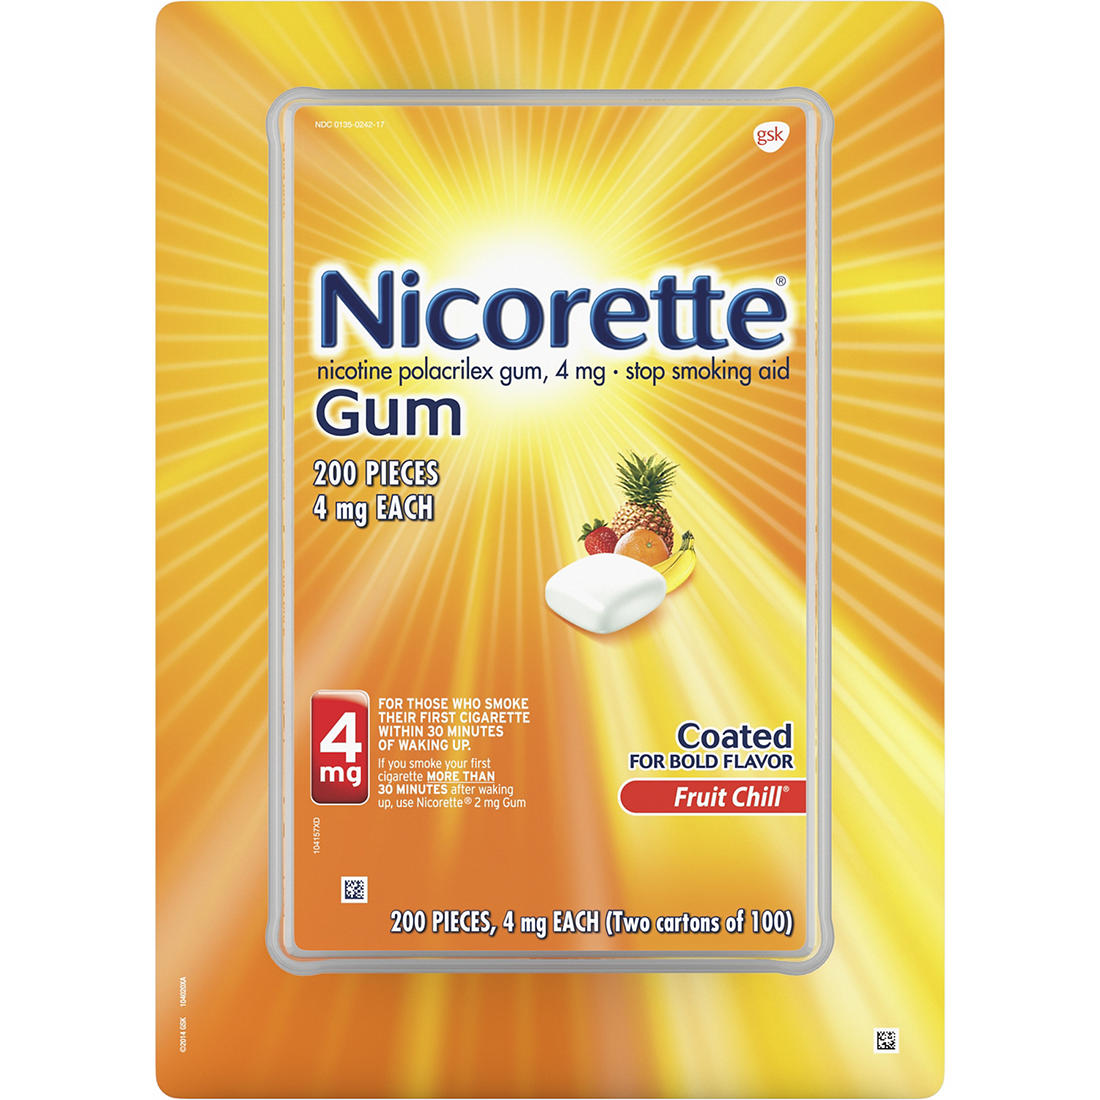 image regarding Nicorette Printable Coupon identified as Nicorette 4mg Fruit Chill Gum, 200 ct.